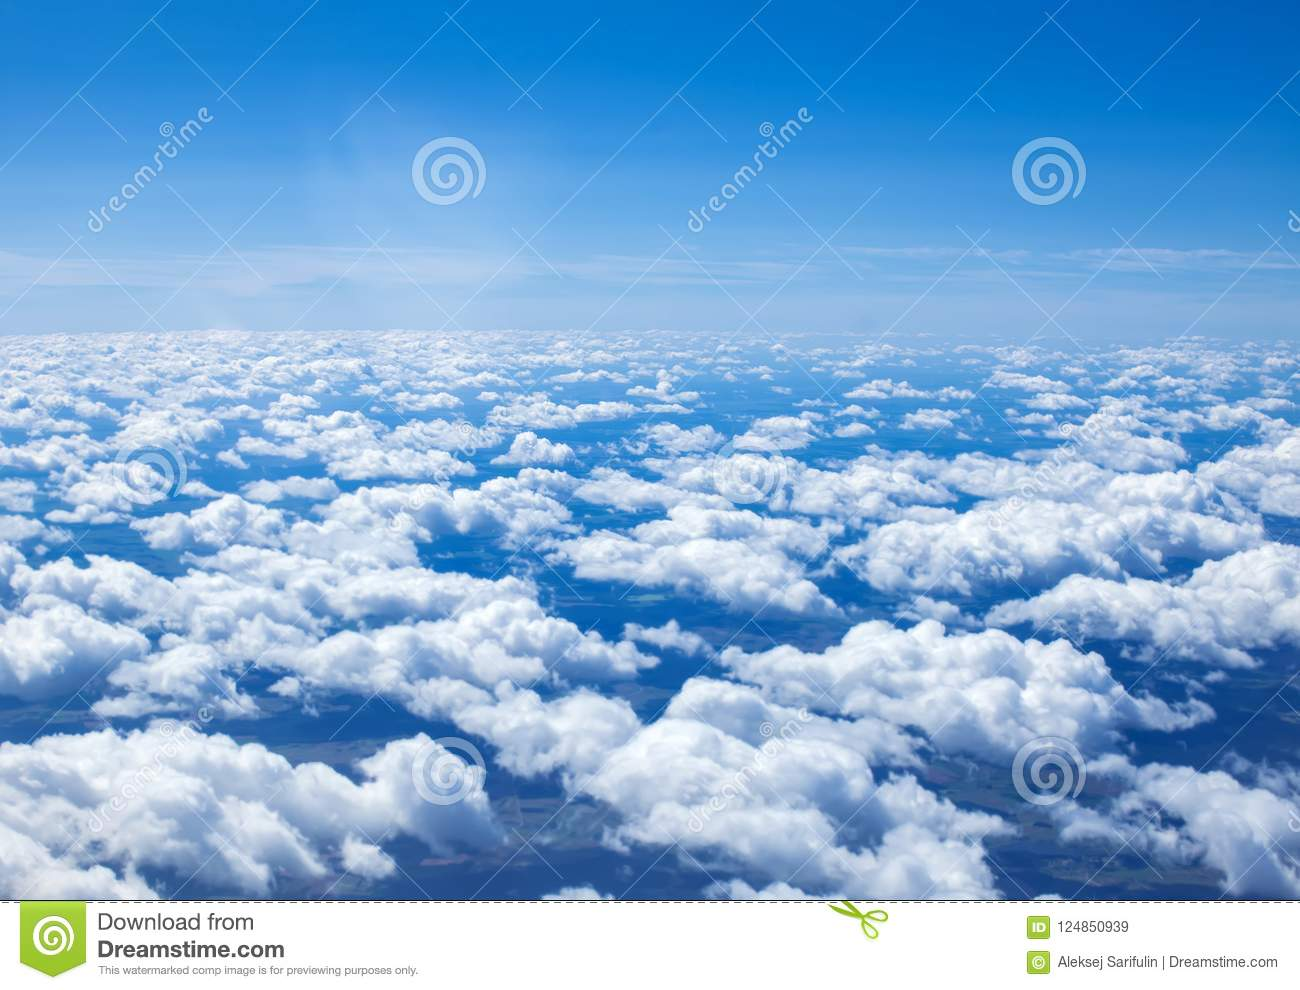 Excellent Airplain Window Seat View Of Big White Thick Fluffy Clouds Beatyapartments Chair Design Images Beatyapartmentscom